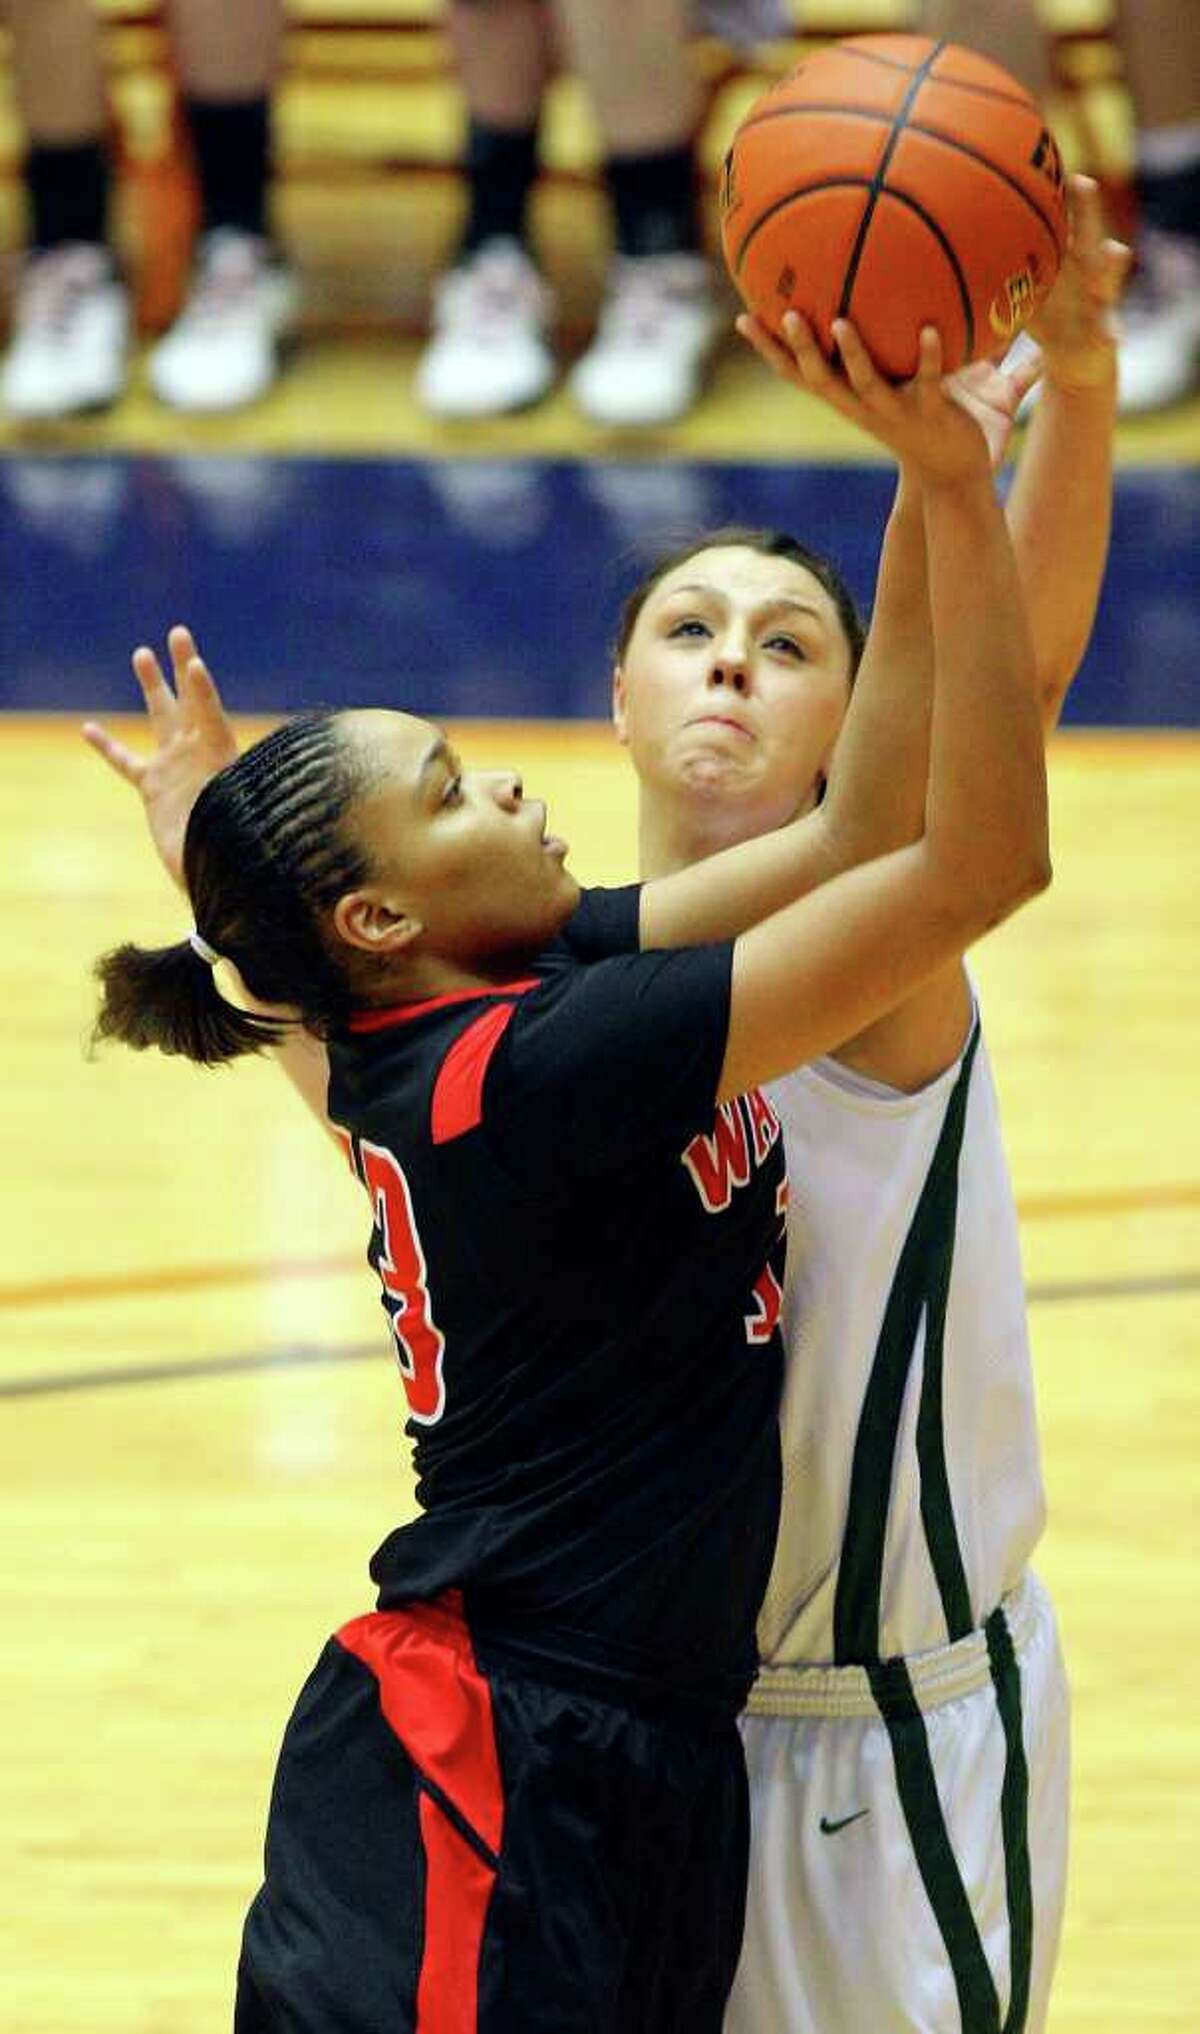 FOR SPORTS - Wagner's Kiara Rivera has her shot blocked by Corpus Christi King's Dempsey Thornton during first half action of the Region IV-5A final Saturday Feb. 26, 2011 at the UTSA Convocation Center. (PHOTO BY EDWARD A. ORNELAS/eaornelas@express-news.net)